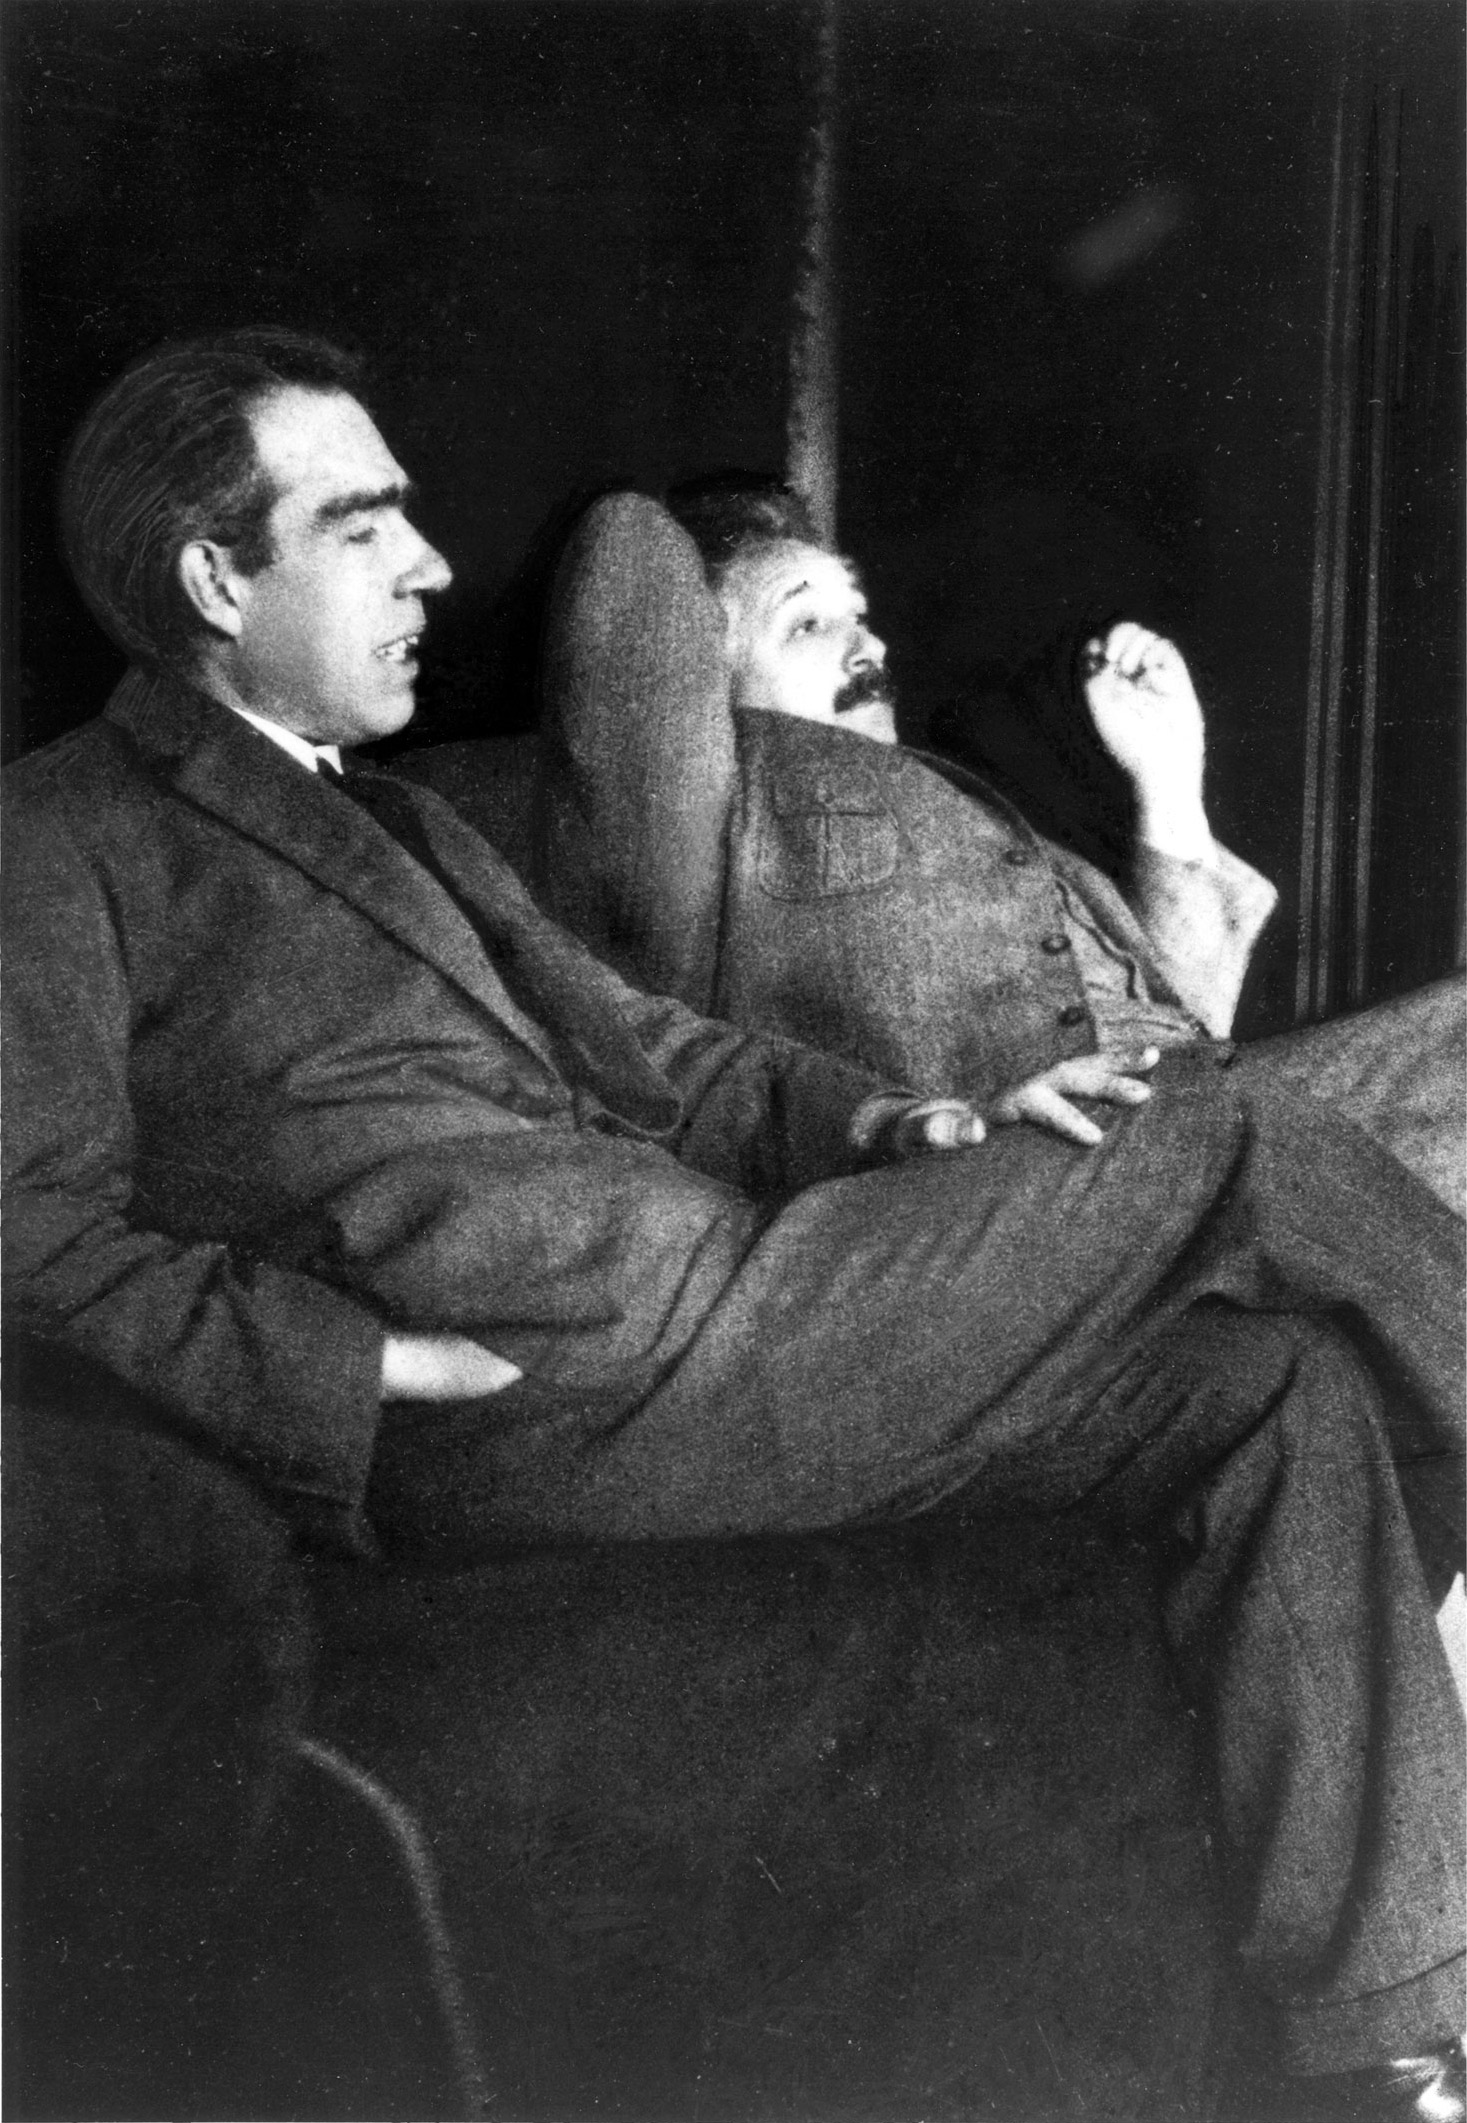 Besides Einstein, Danish Jewish physicist Niels Bohr was one of the main contributors to quantum mechanics. The 1922 Nobel laureate remained friendly with Einstein until the latter's death in 1955. Bohr and Einstein in 1925